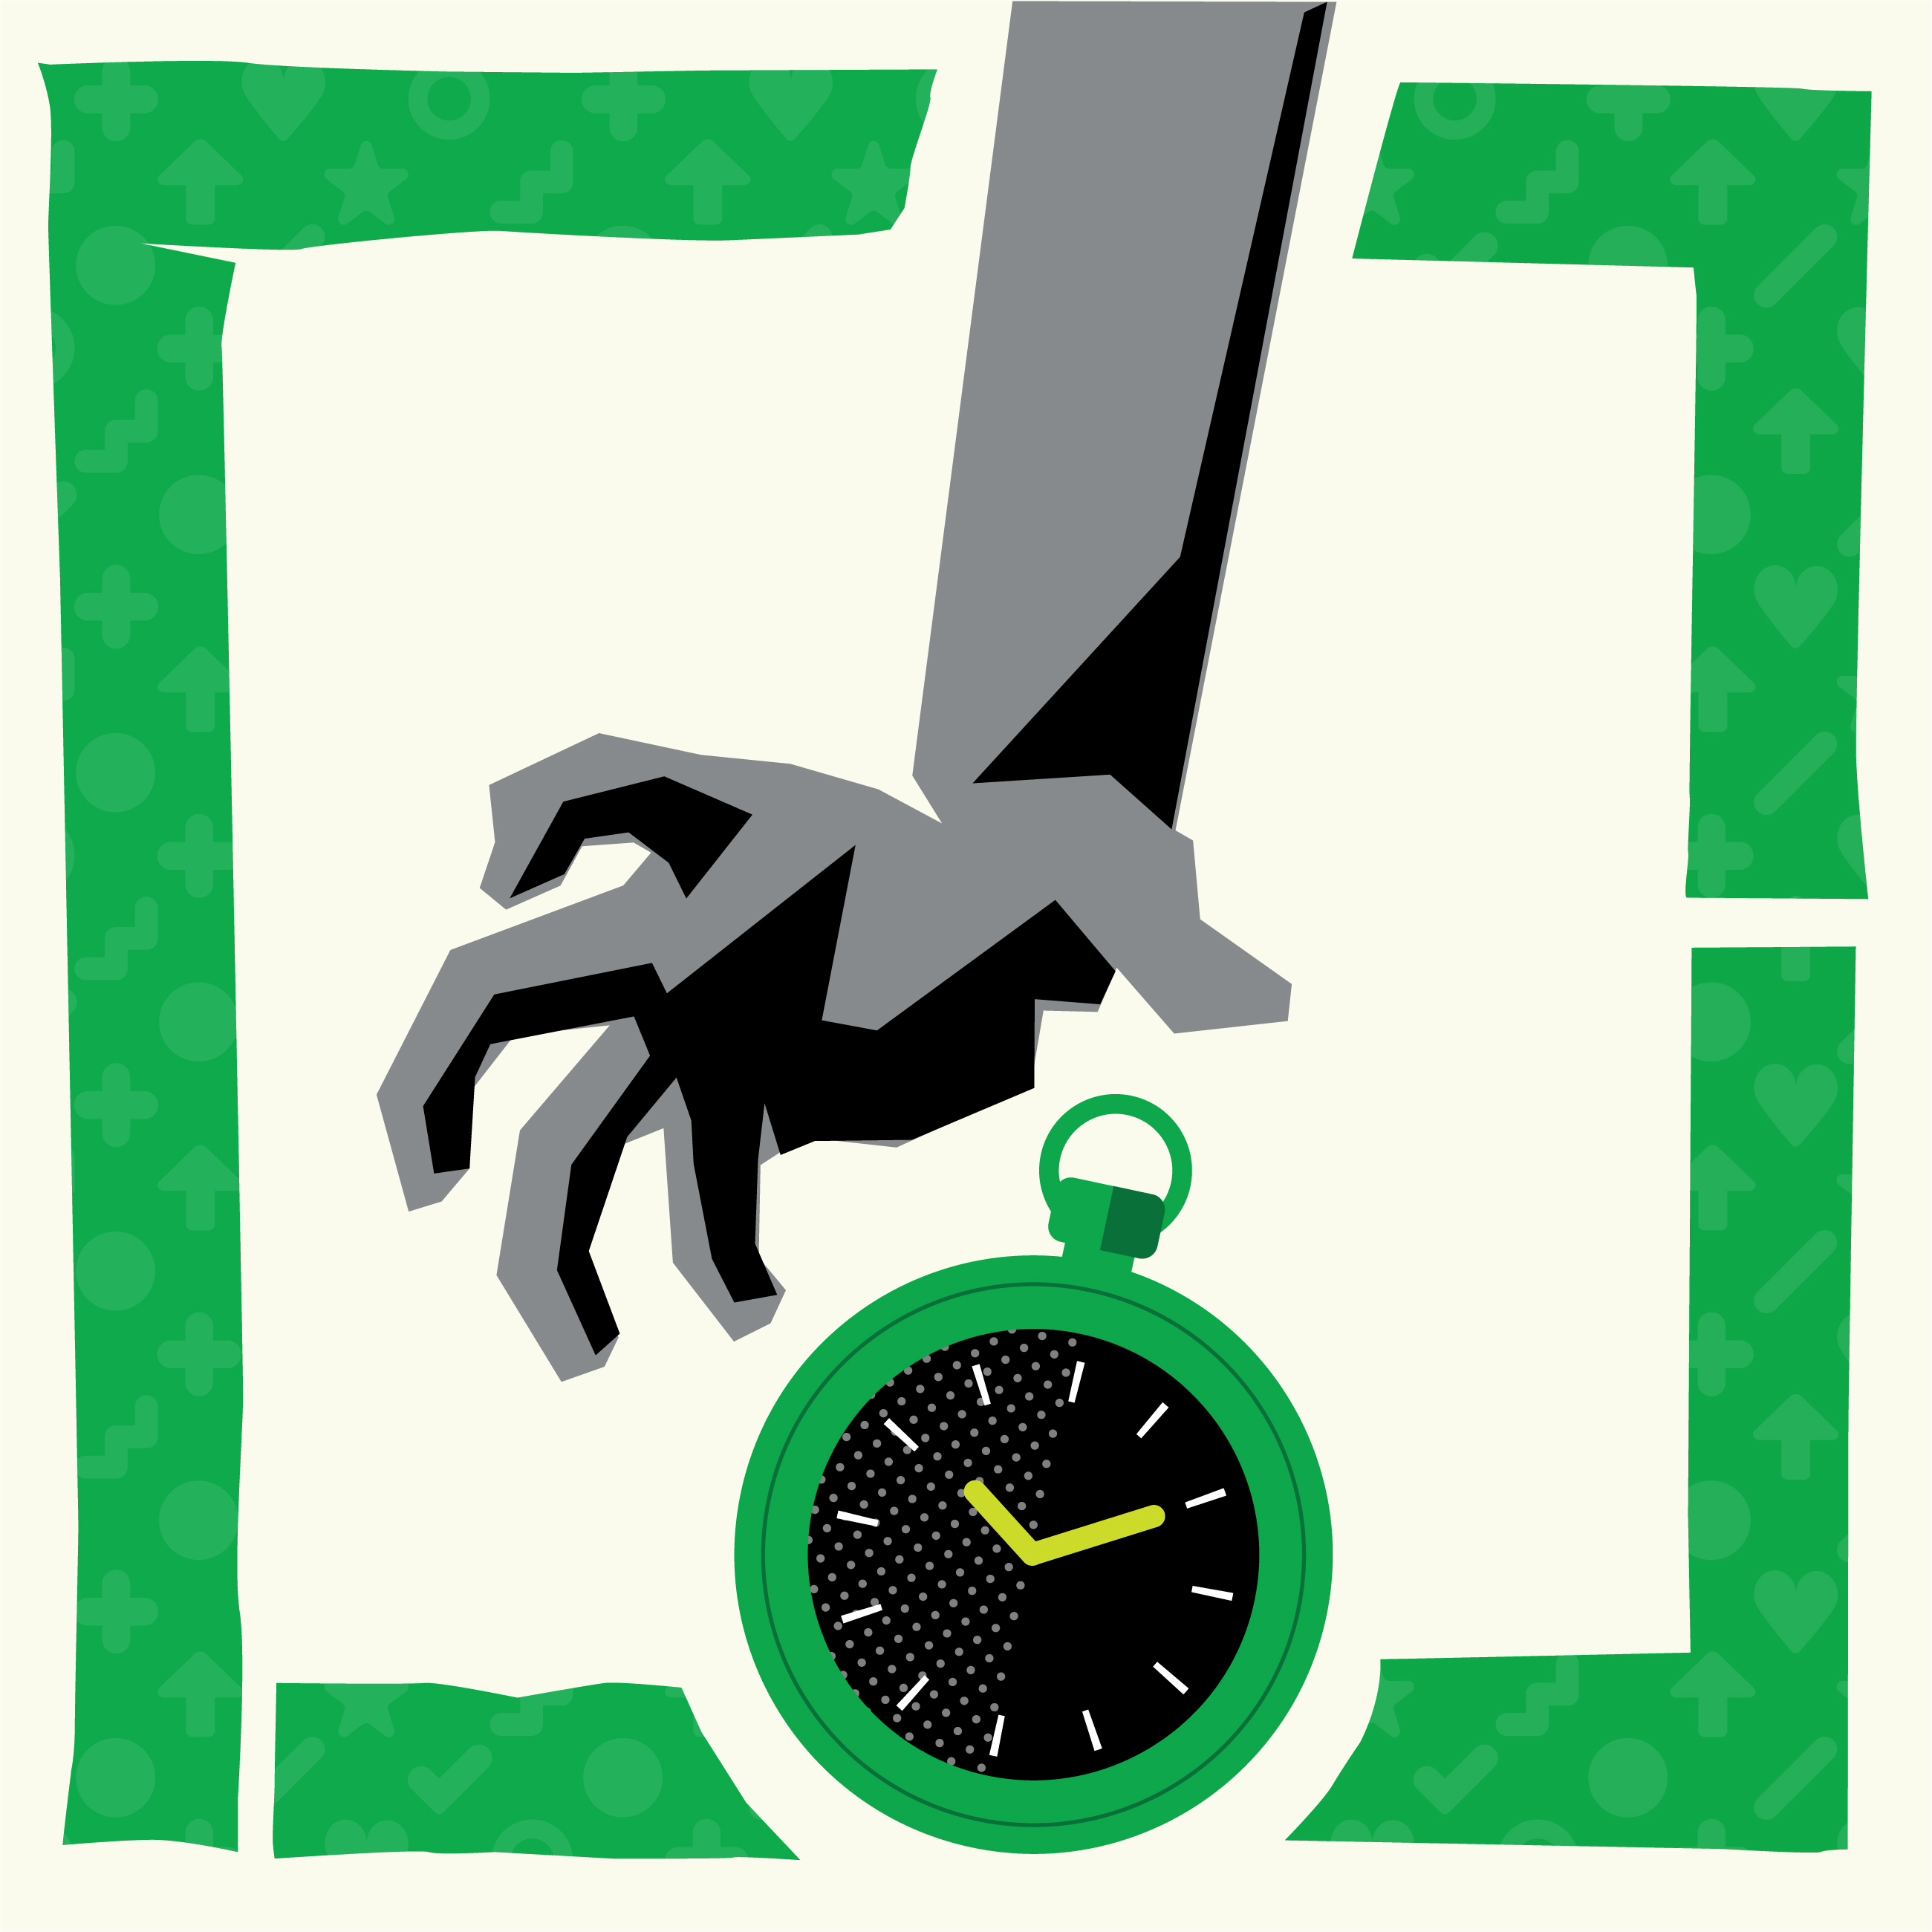 Illustration of a hand reaching for a stopwatch.